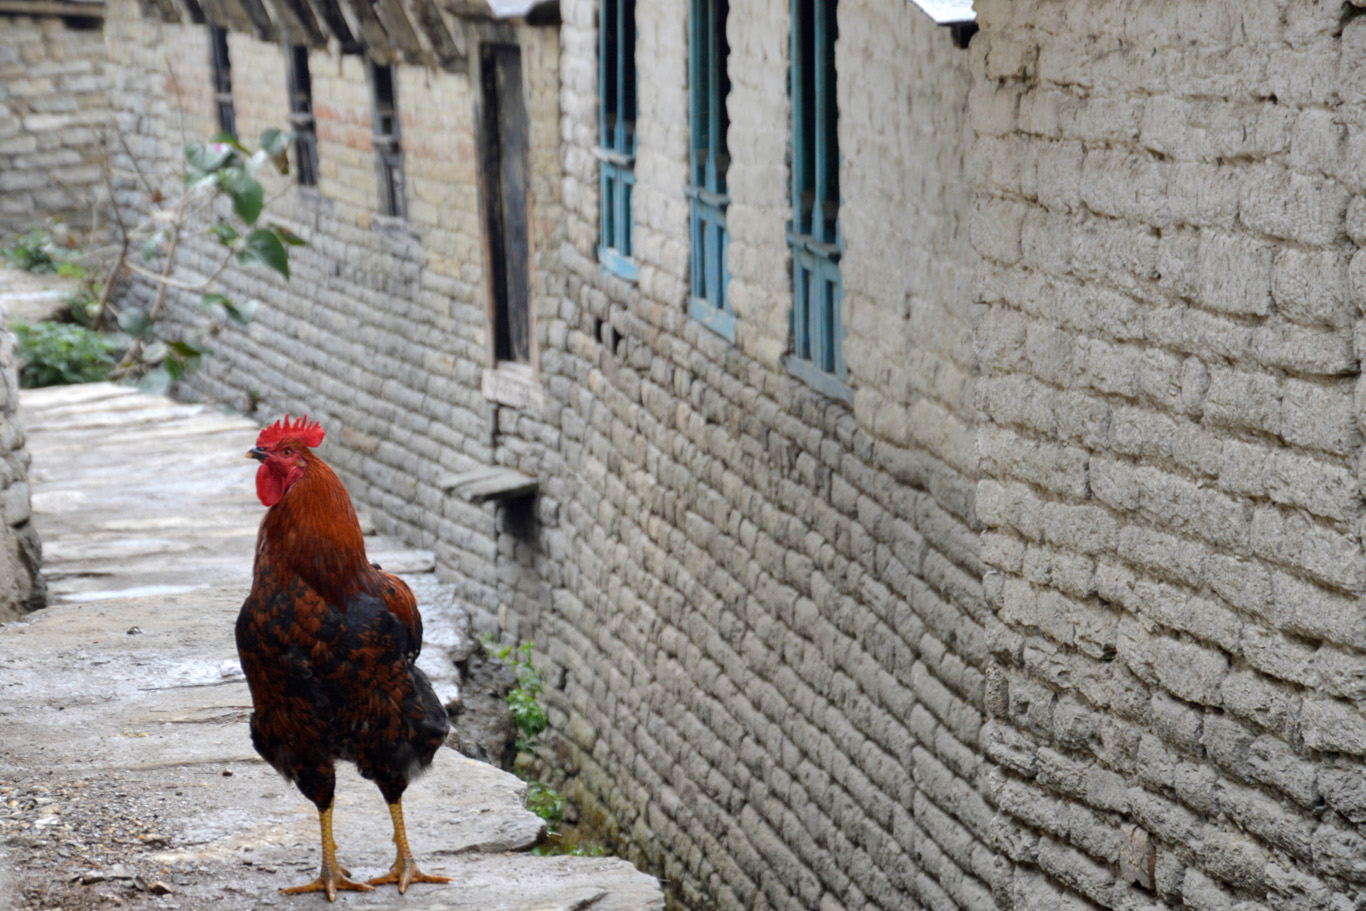 A rooster in Ulleri